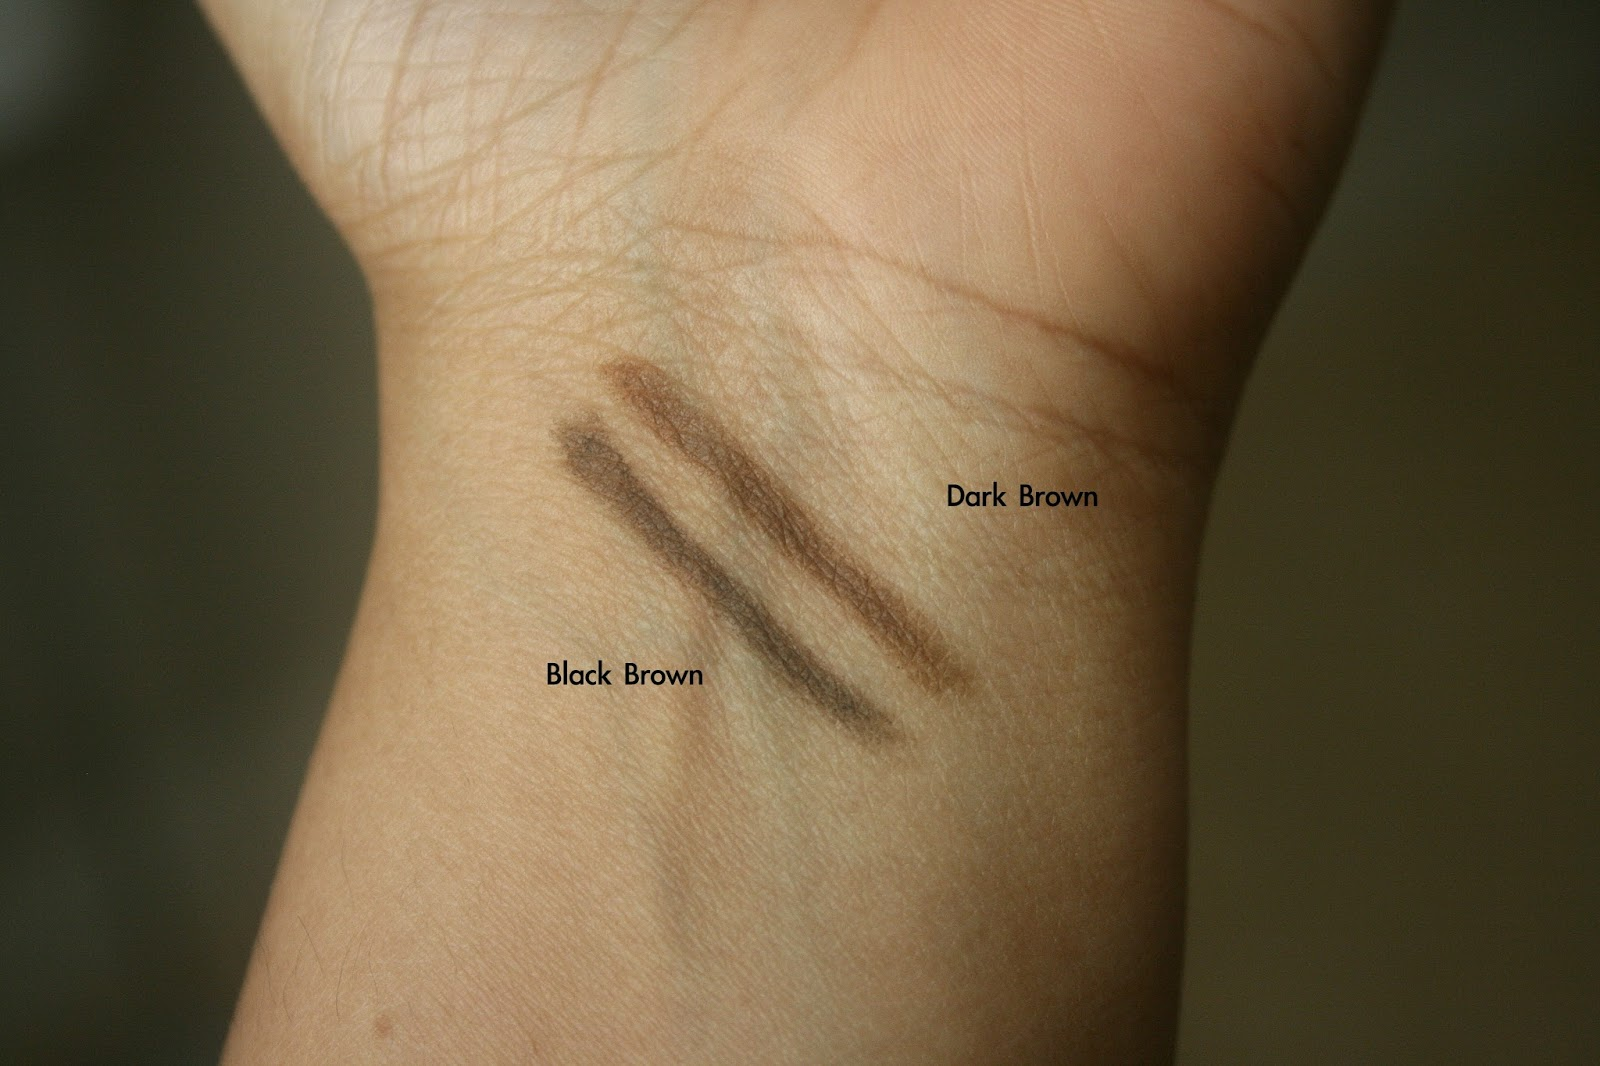 Jane Cosmetics All Angles Always Brow Pencils Black Brown, Dark Brown Swatch